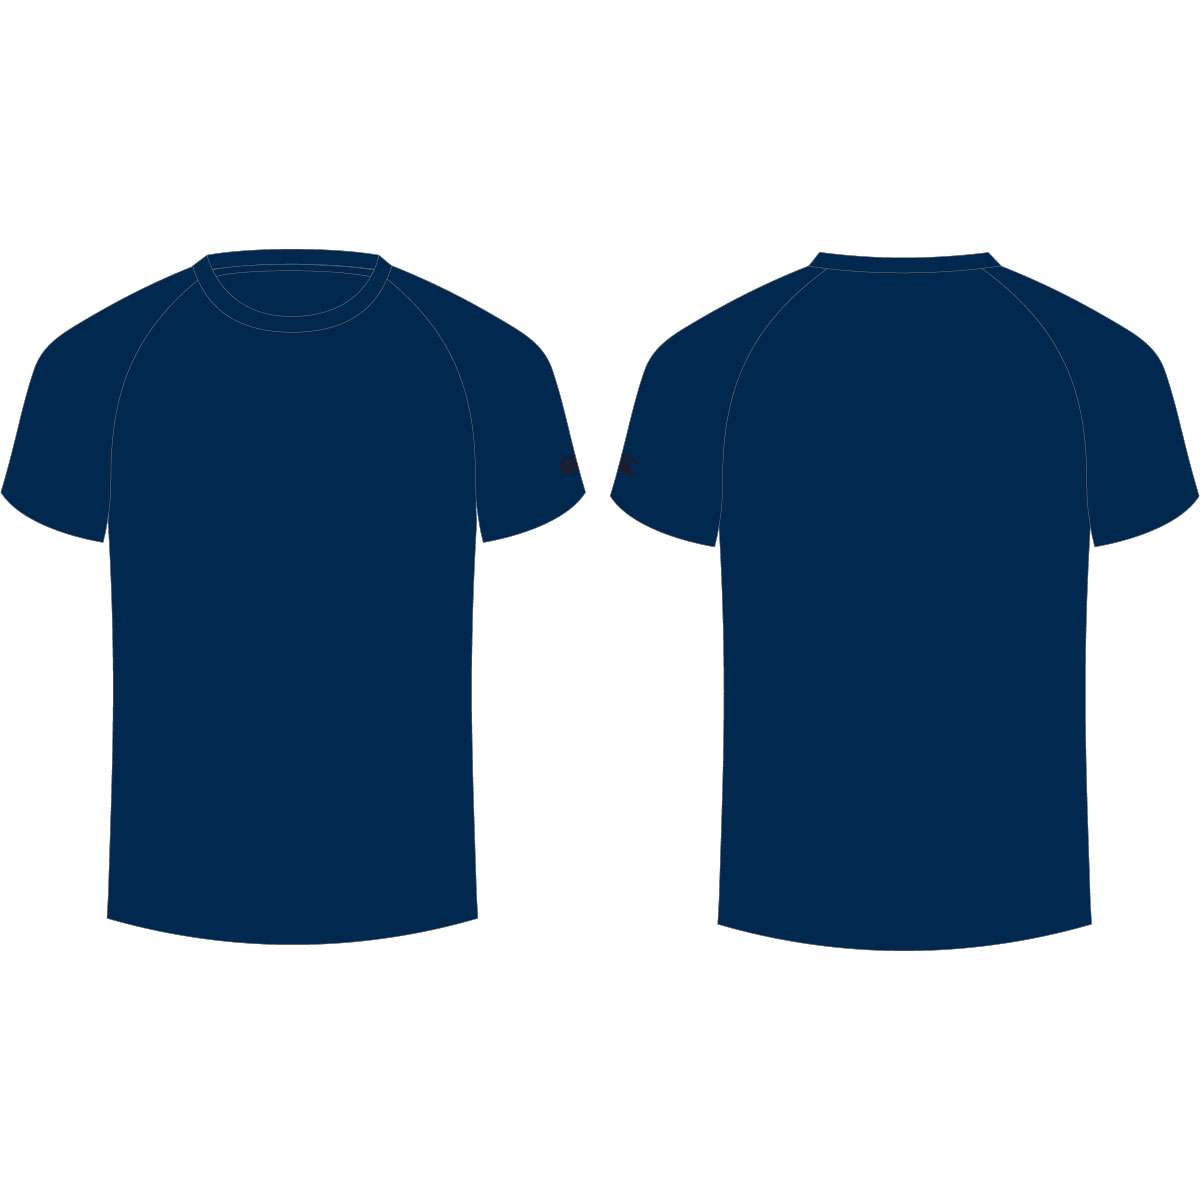 blank navy blue t shirt template clipart best